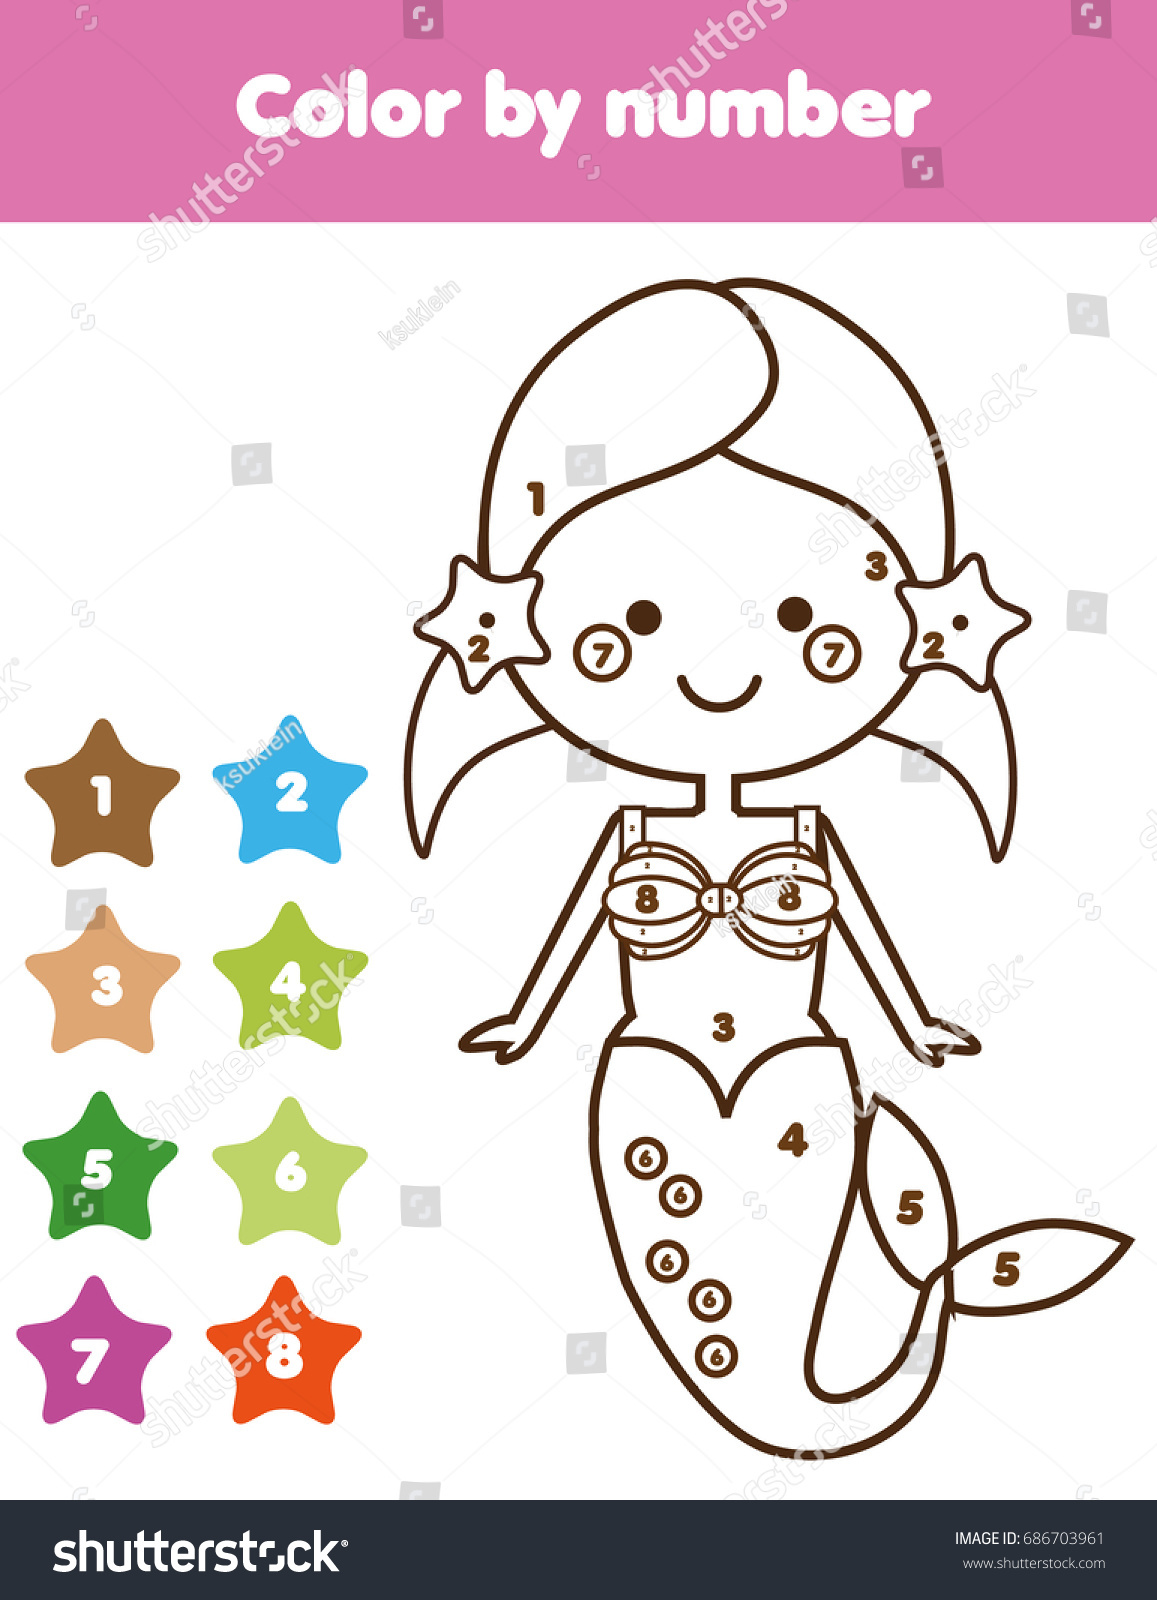 Childrens educational coloring activity book - Children Educational Game Coloring Page With Mermaid Color By Numbers Printable Activity